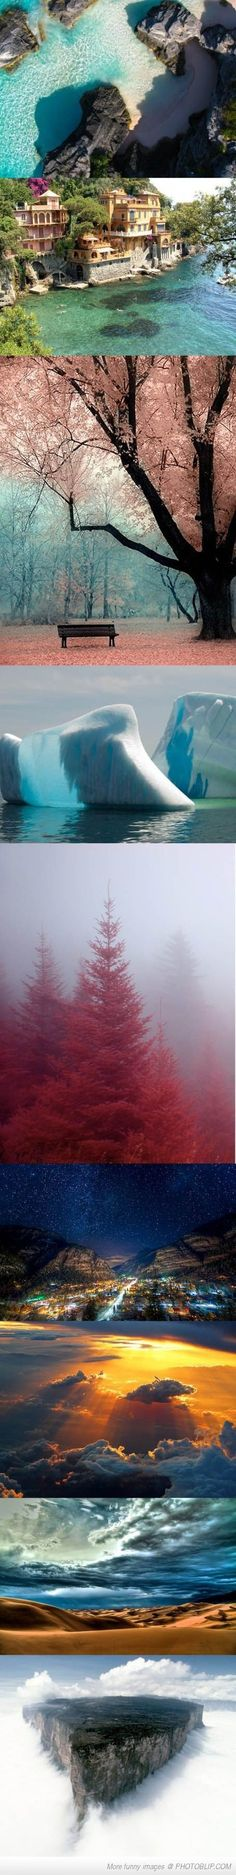 Could you imagine being in the very spot the photographer took these pictures in? It would be unreal.